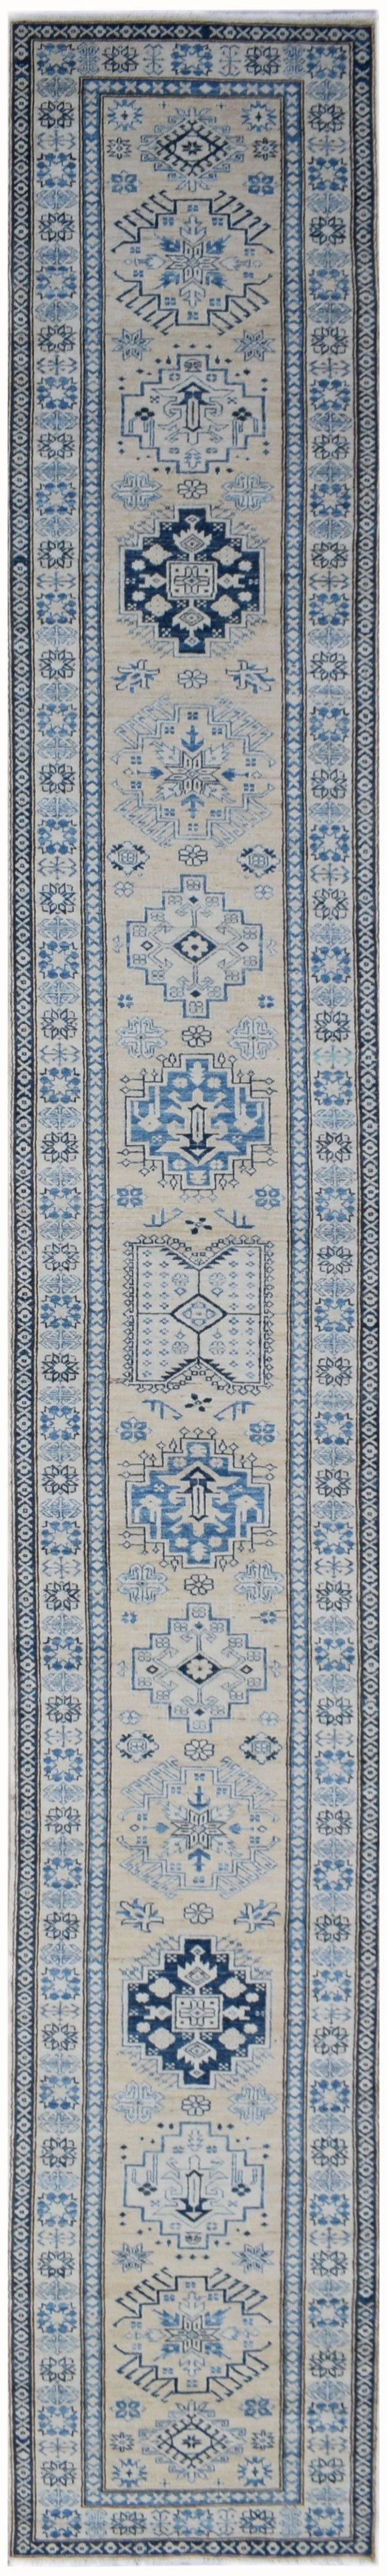 Handmade Super Sultan Collection Hallway Runner | 481 x 82 cm | 19'1